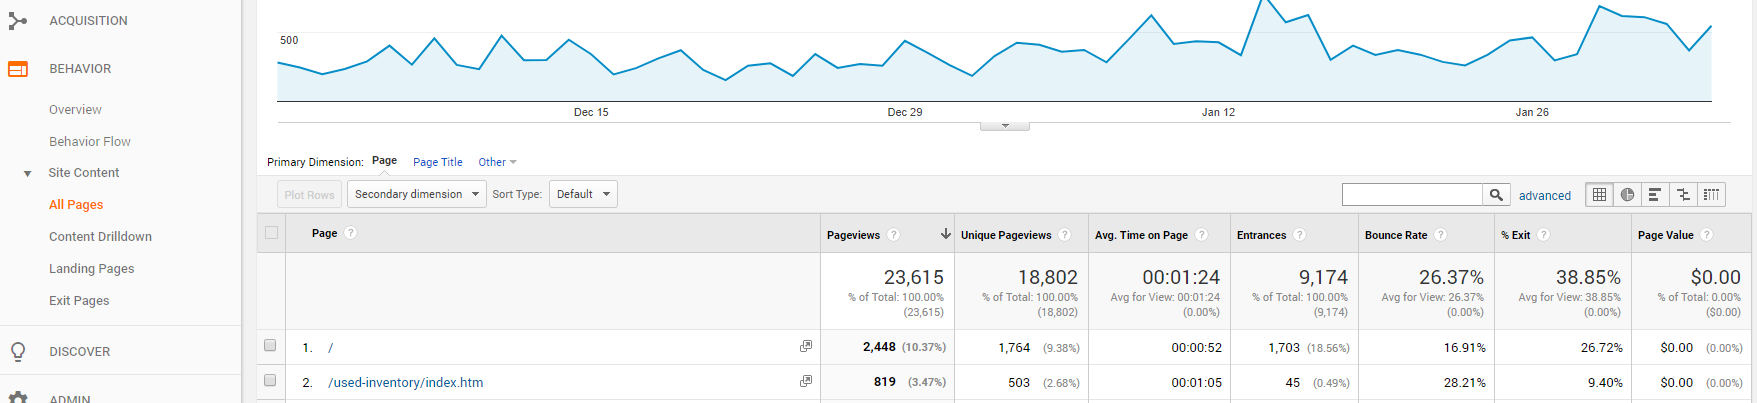 top pages metric